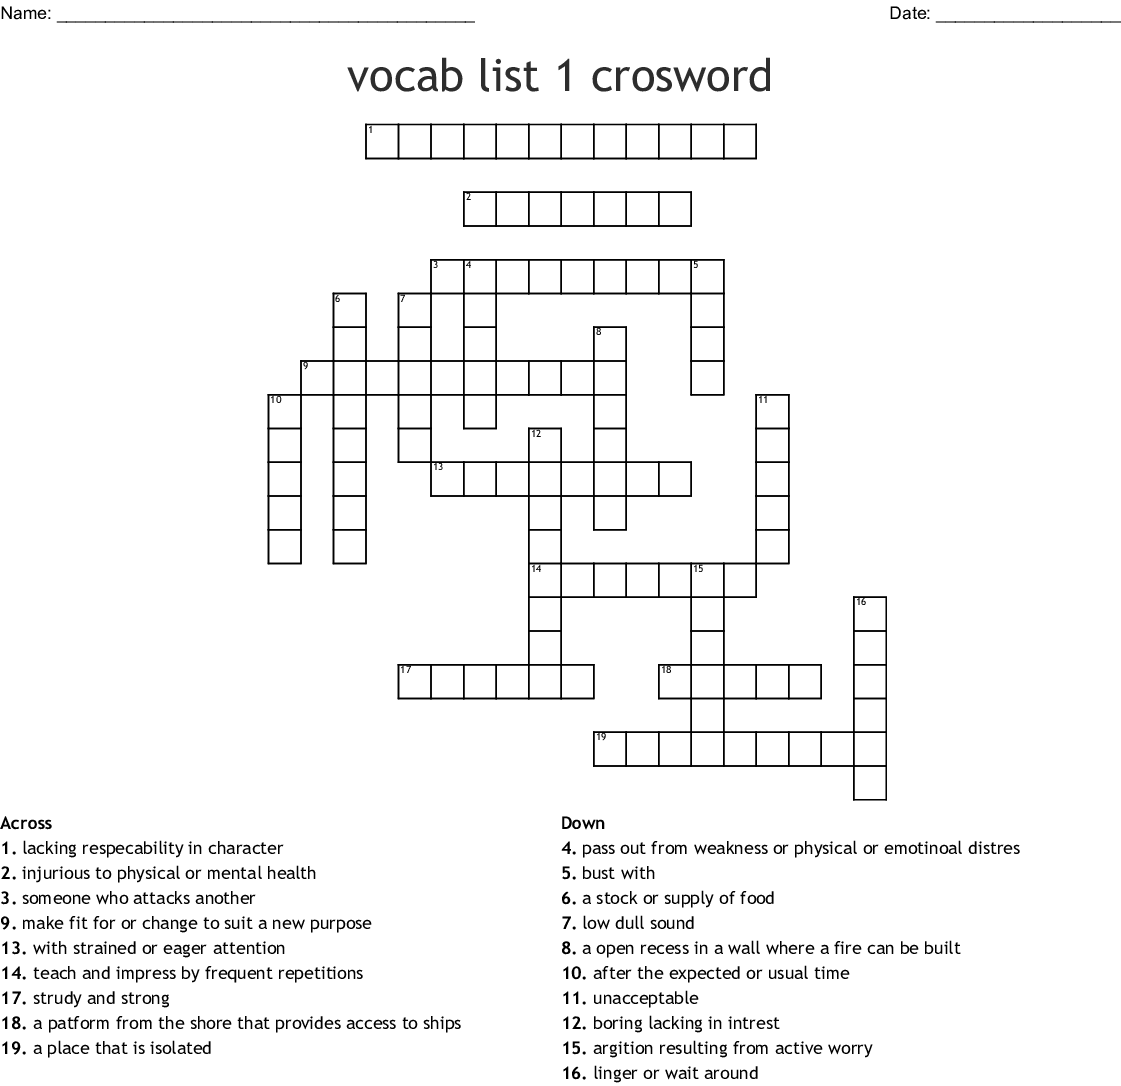 Vocabulary List 1# Crossword - WordMint